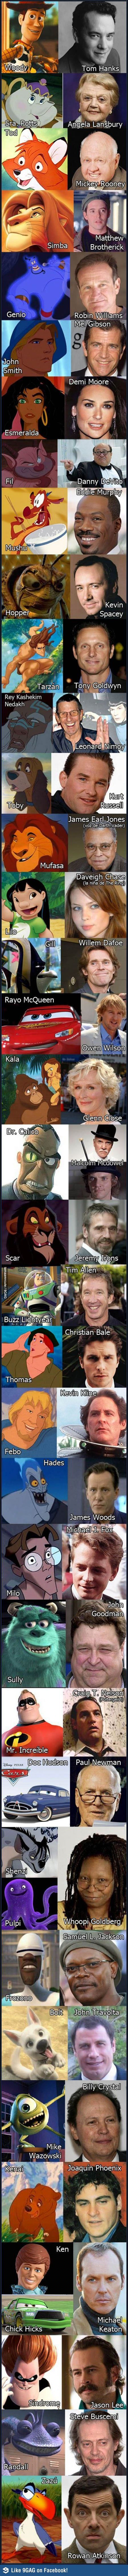 Love this - Cartoon characters and the famous actors who voiced them.  Some are surprising.